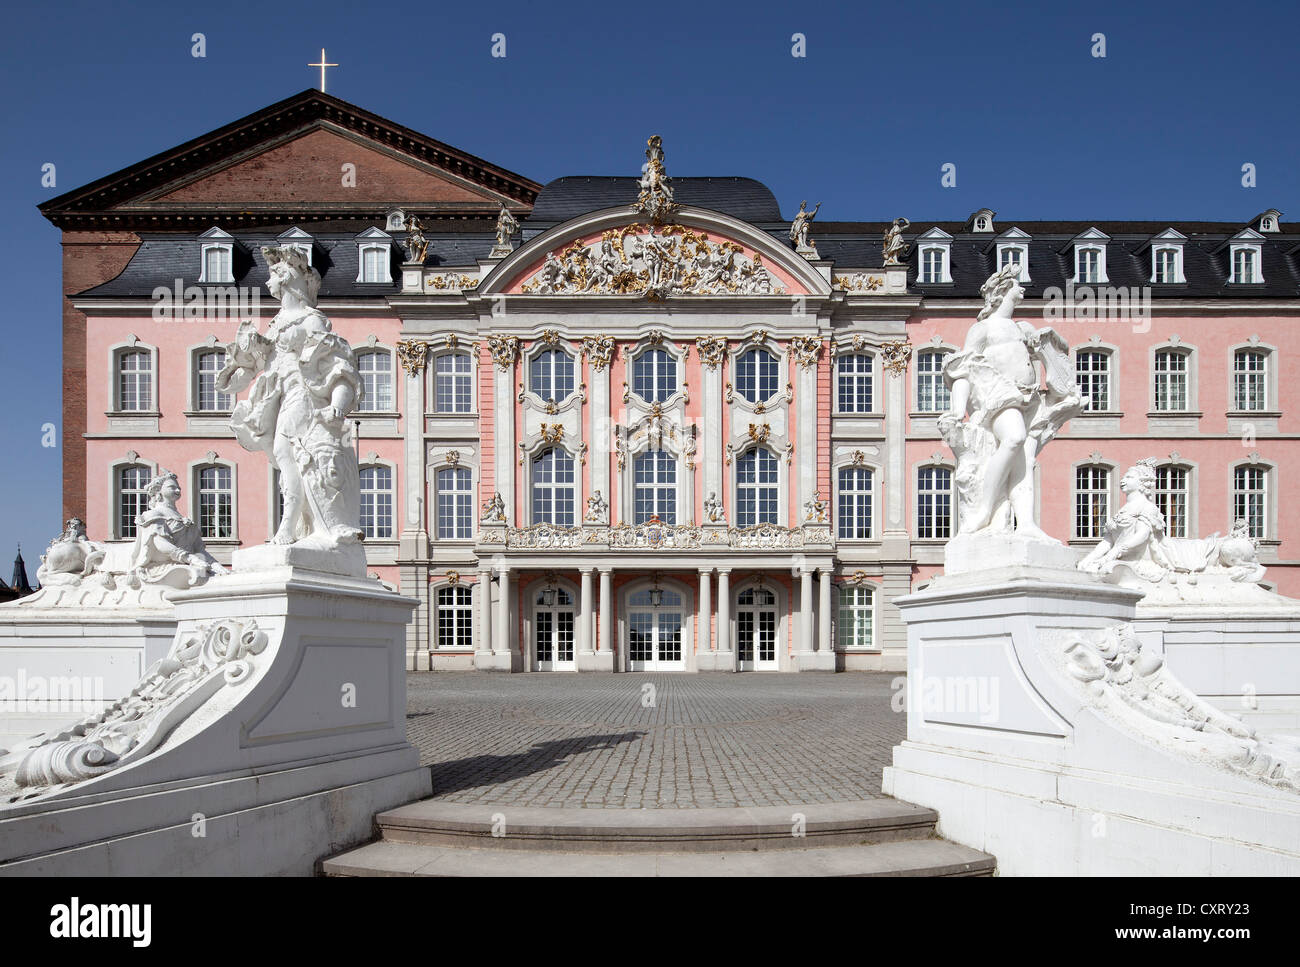 Electoral Palace, public office building, Trier, Rhineland-Palatinate, Germany, Europe, PublicGround Stock Photo